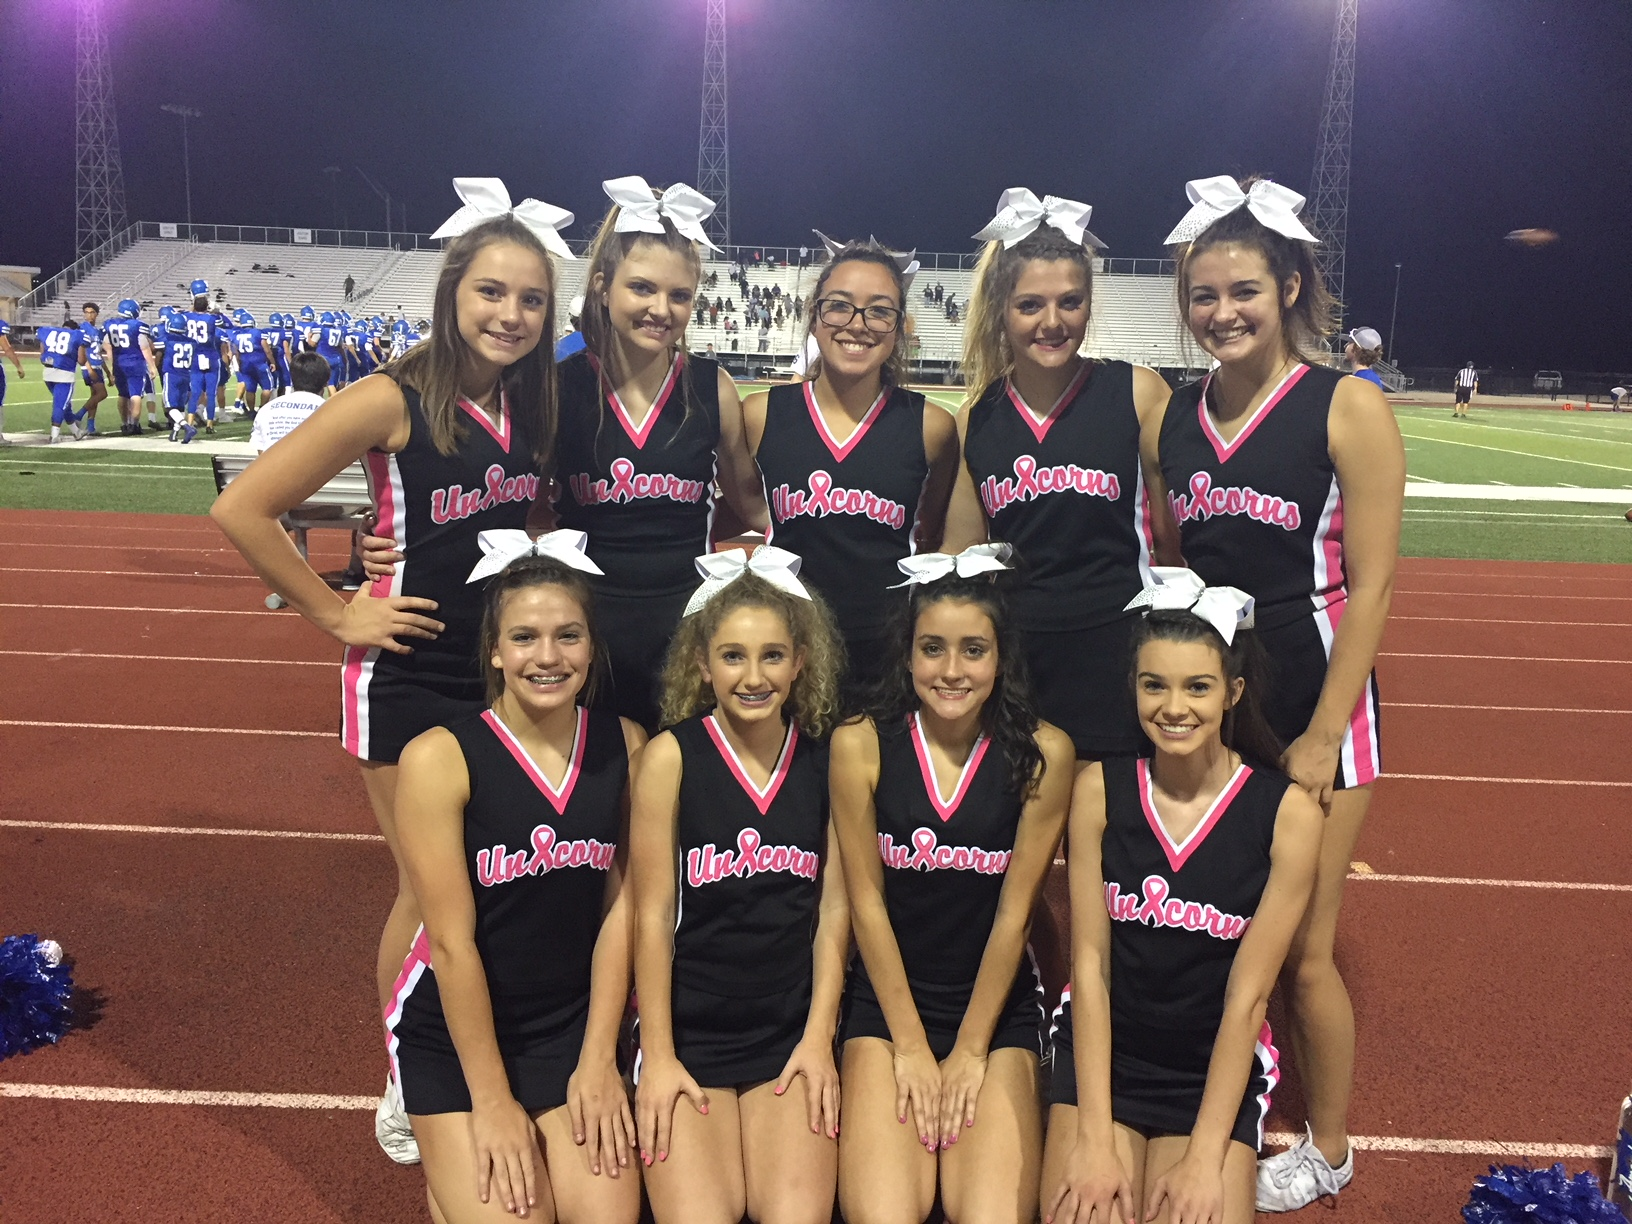 New Braunfels HIgh School JV Cheerleaders in their PInk Out uniforms